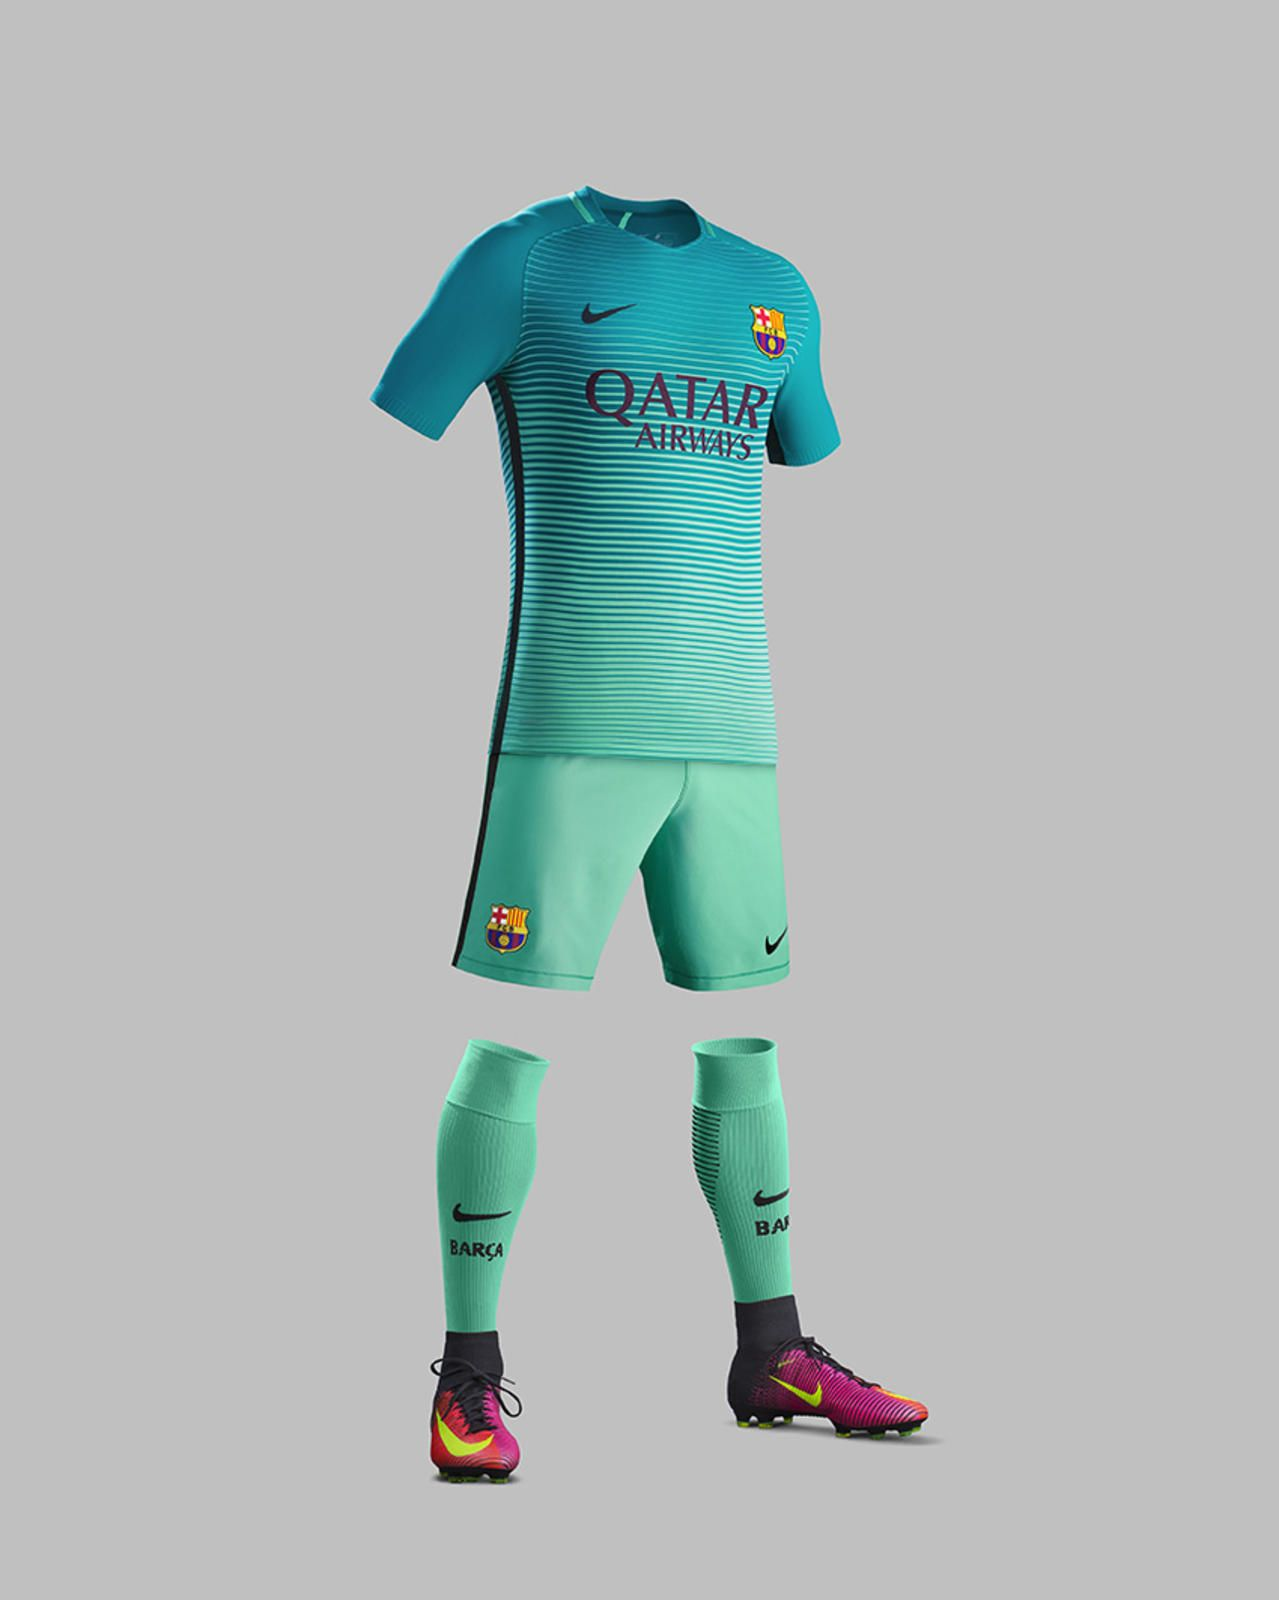 eae9200545 Terceira camisa do Barcelona 2016-2017 Nike kit